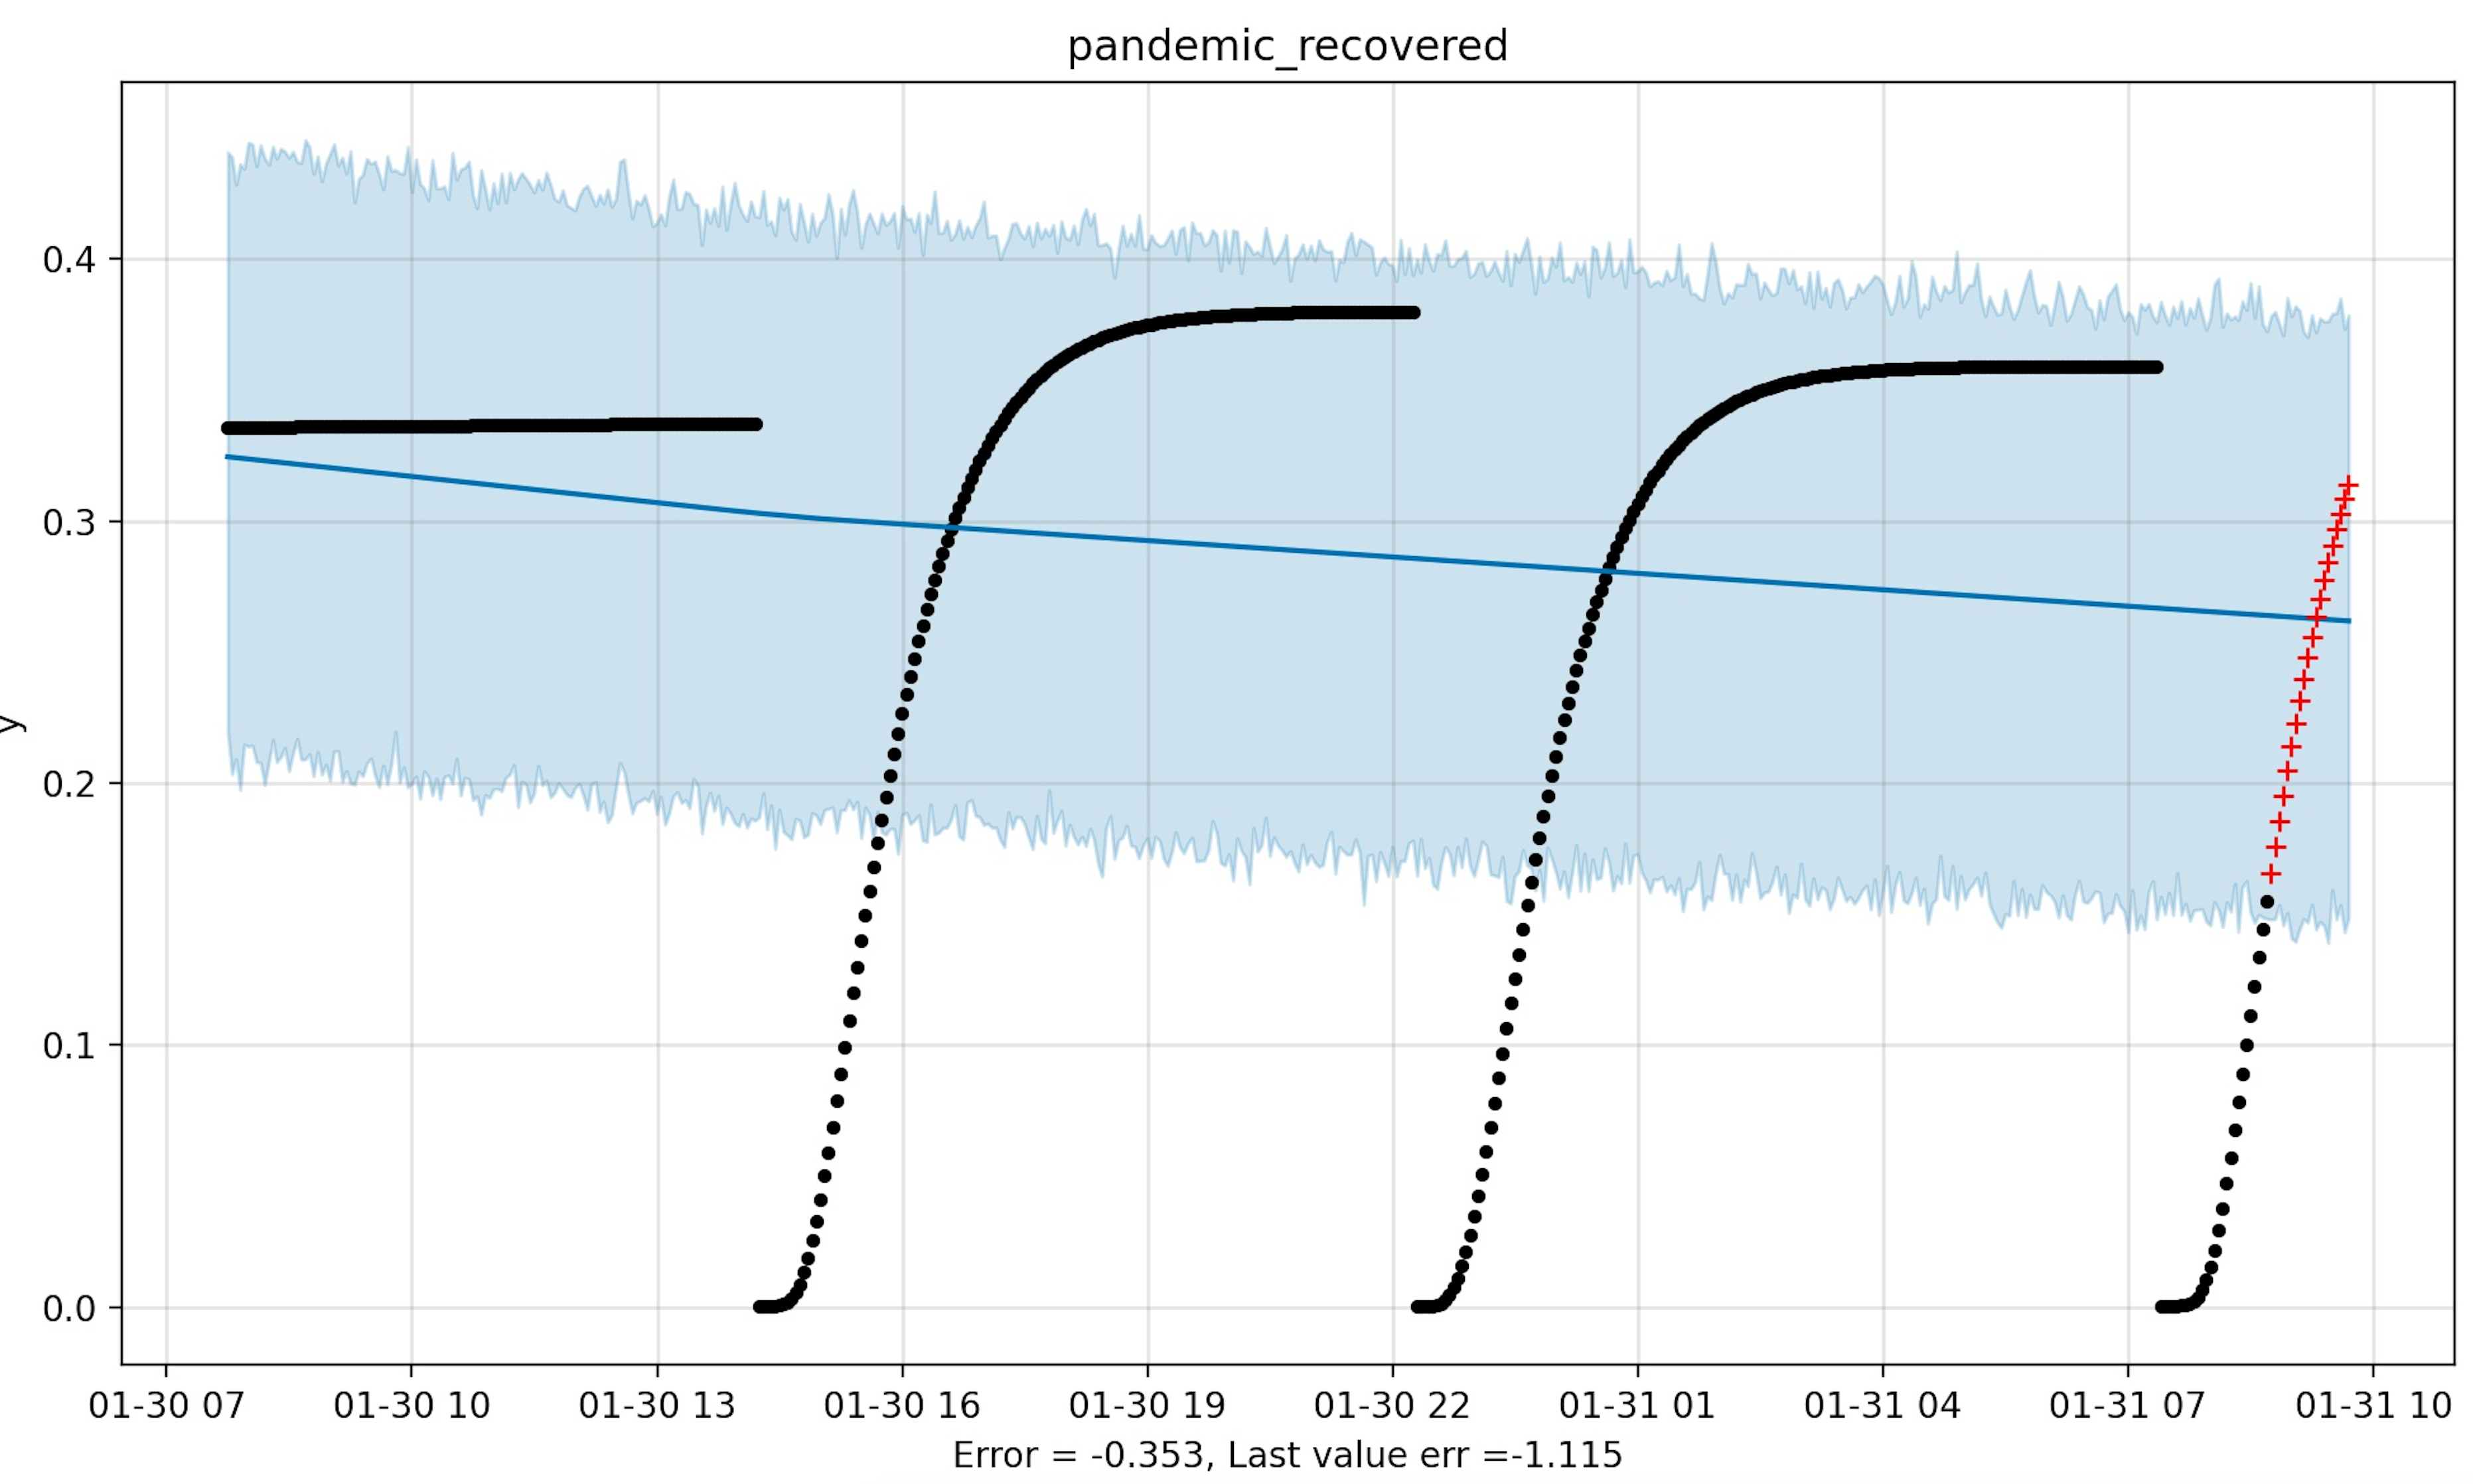 pandemic_recovered